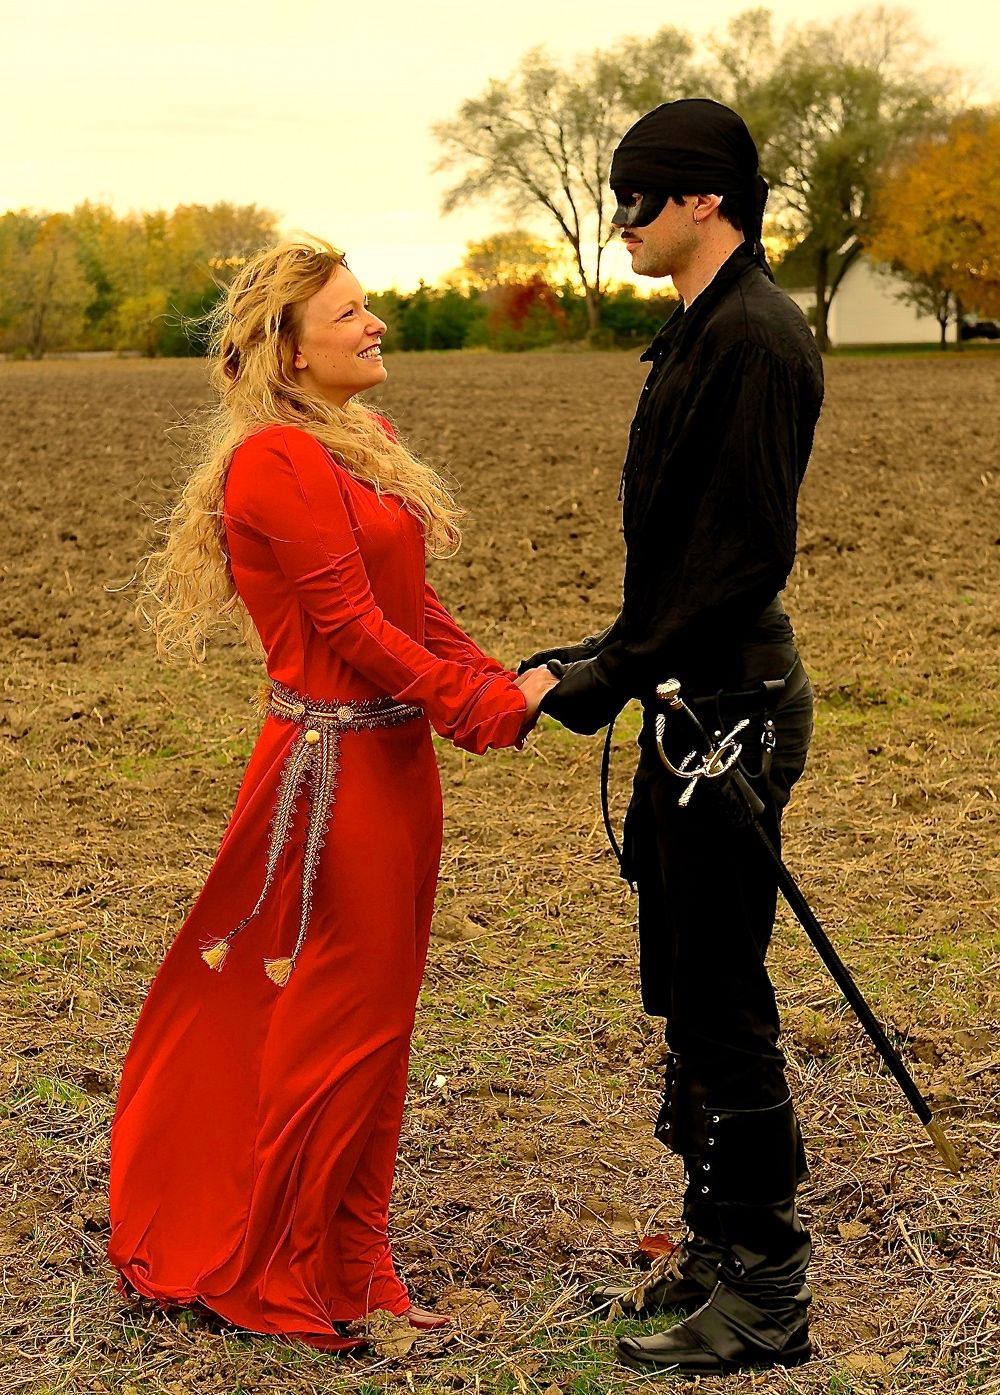 Dress up with your significant other this year! Here are